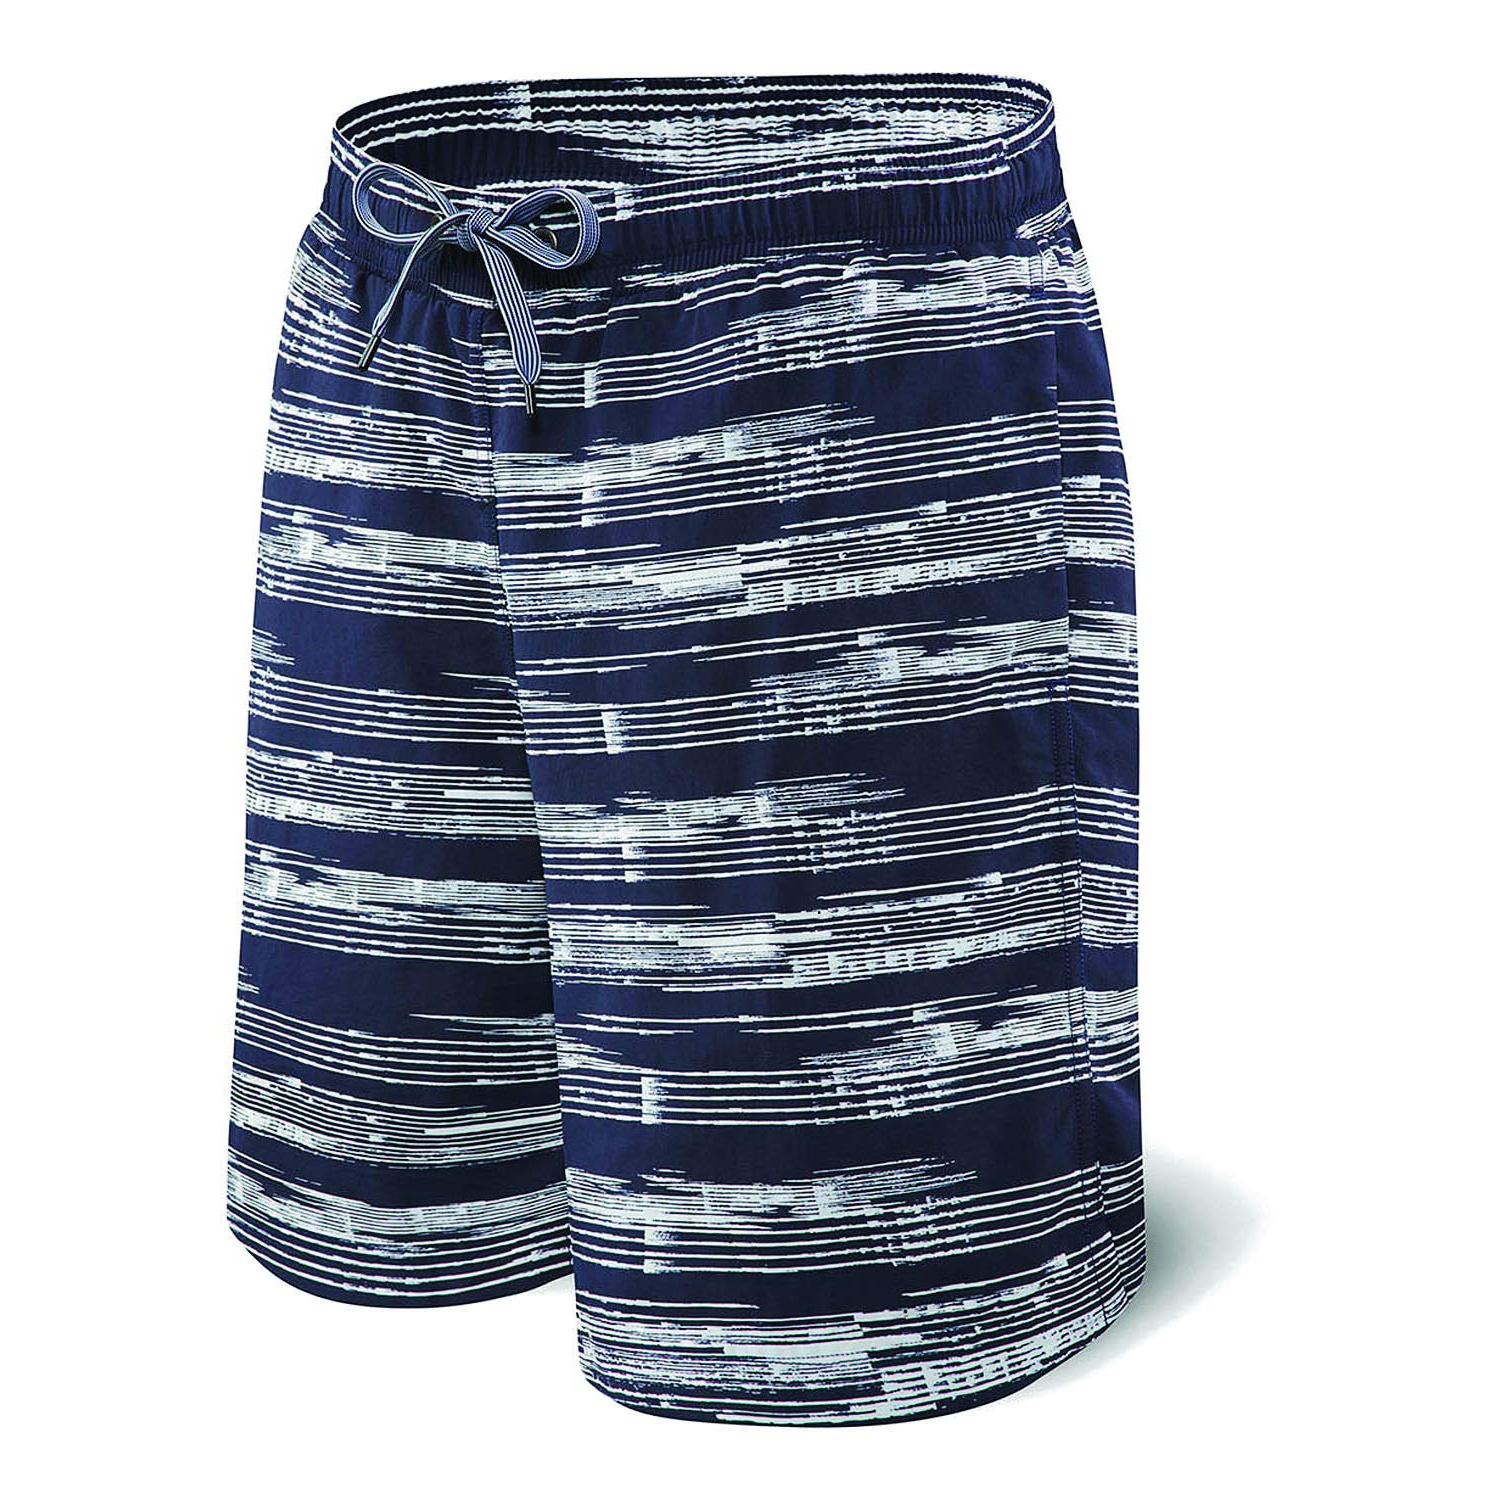 Cannonball 2N1 Long Short - Men's